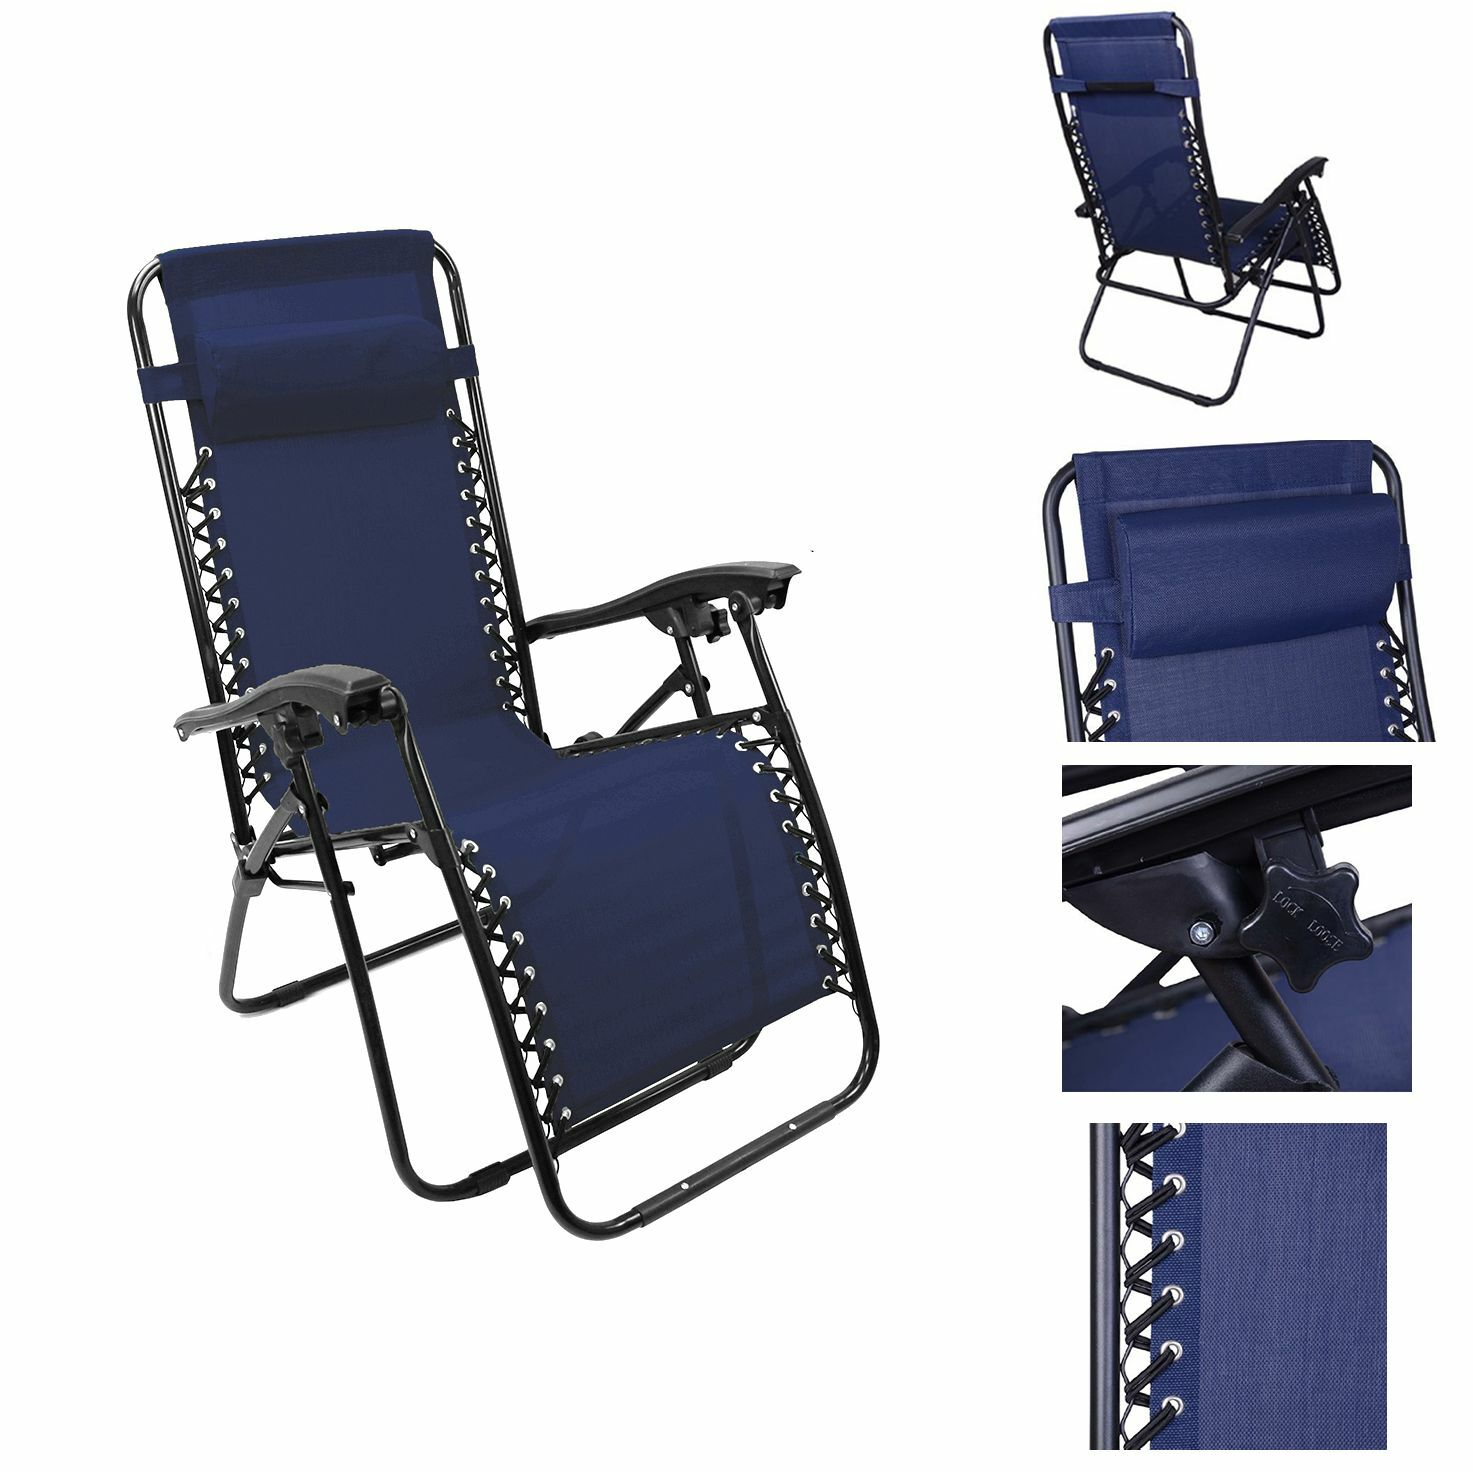 Lounge chair recliner reclining patio pool beach outdoor for Fold up garden chairs